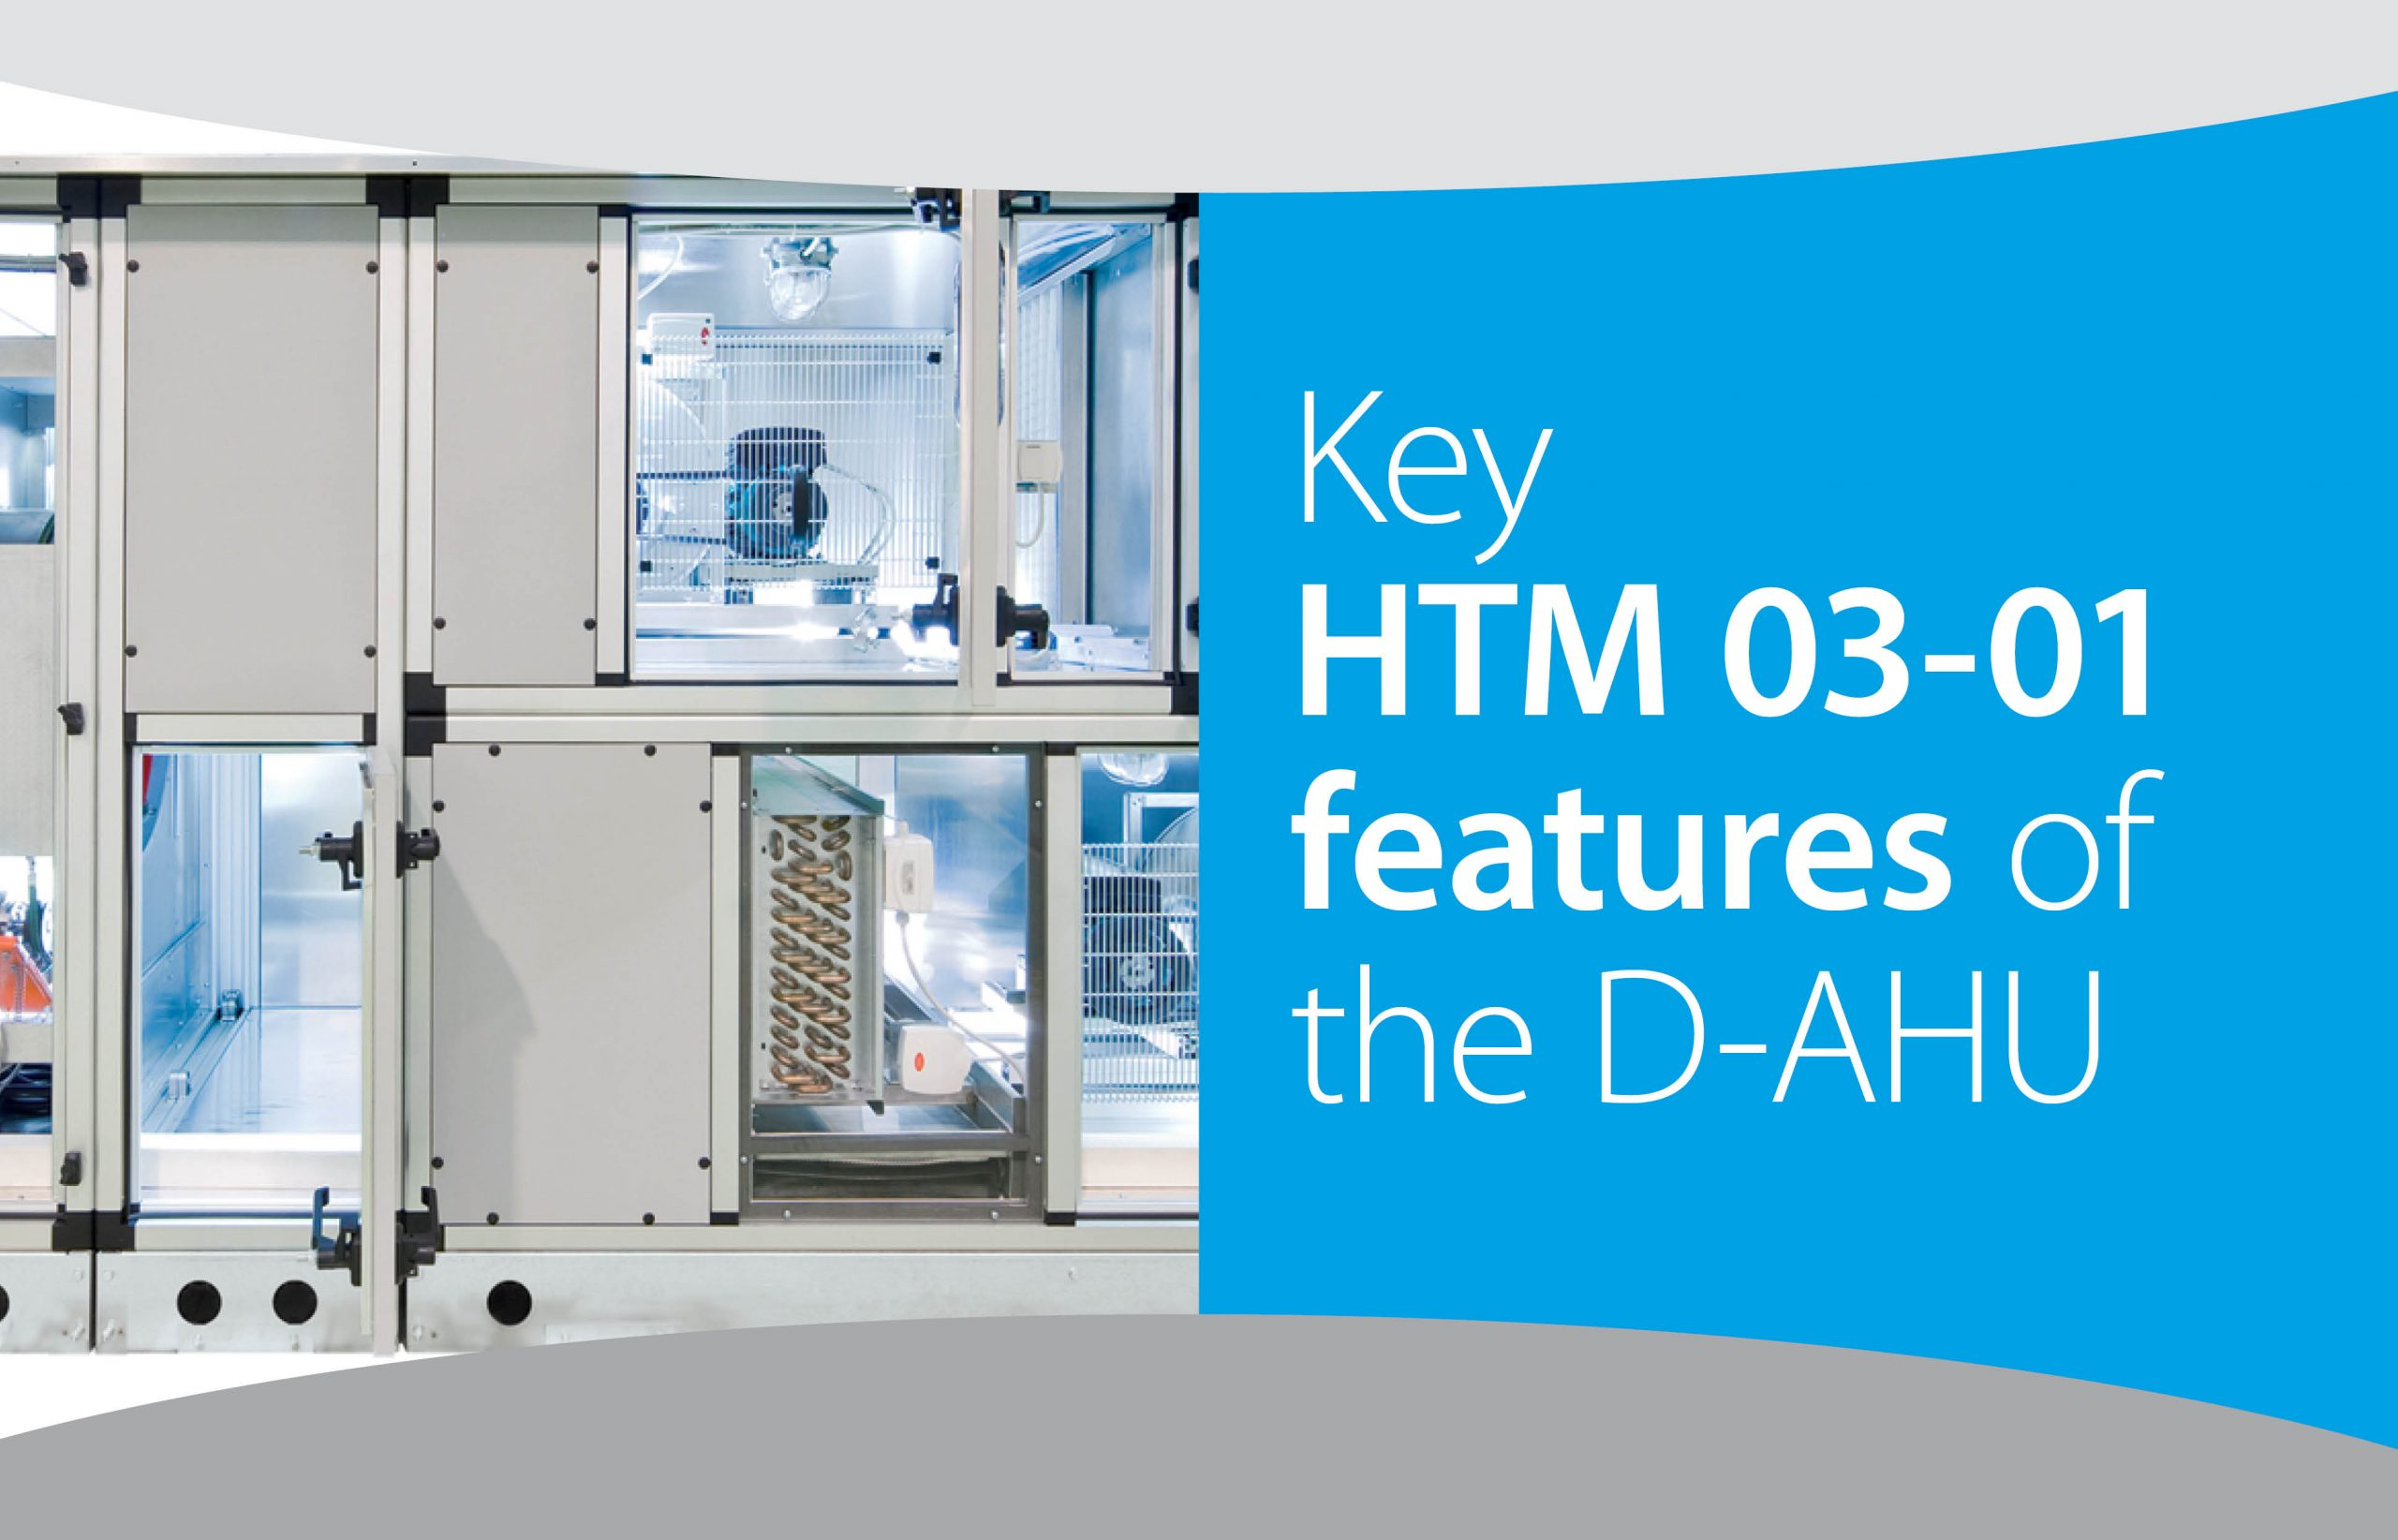 Key HTM 03-01 Compliant Features of the D-AHU range